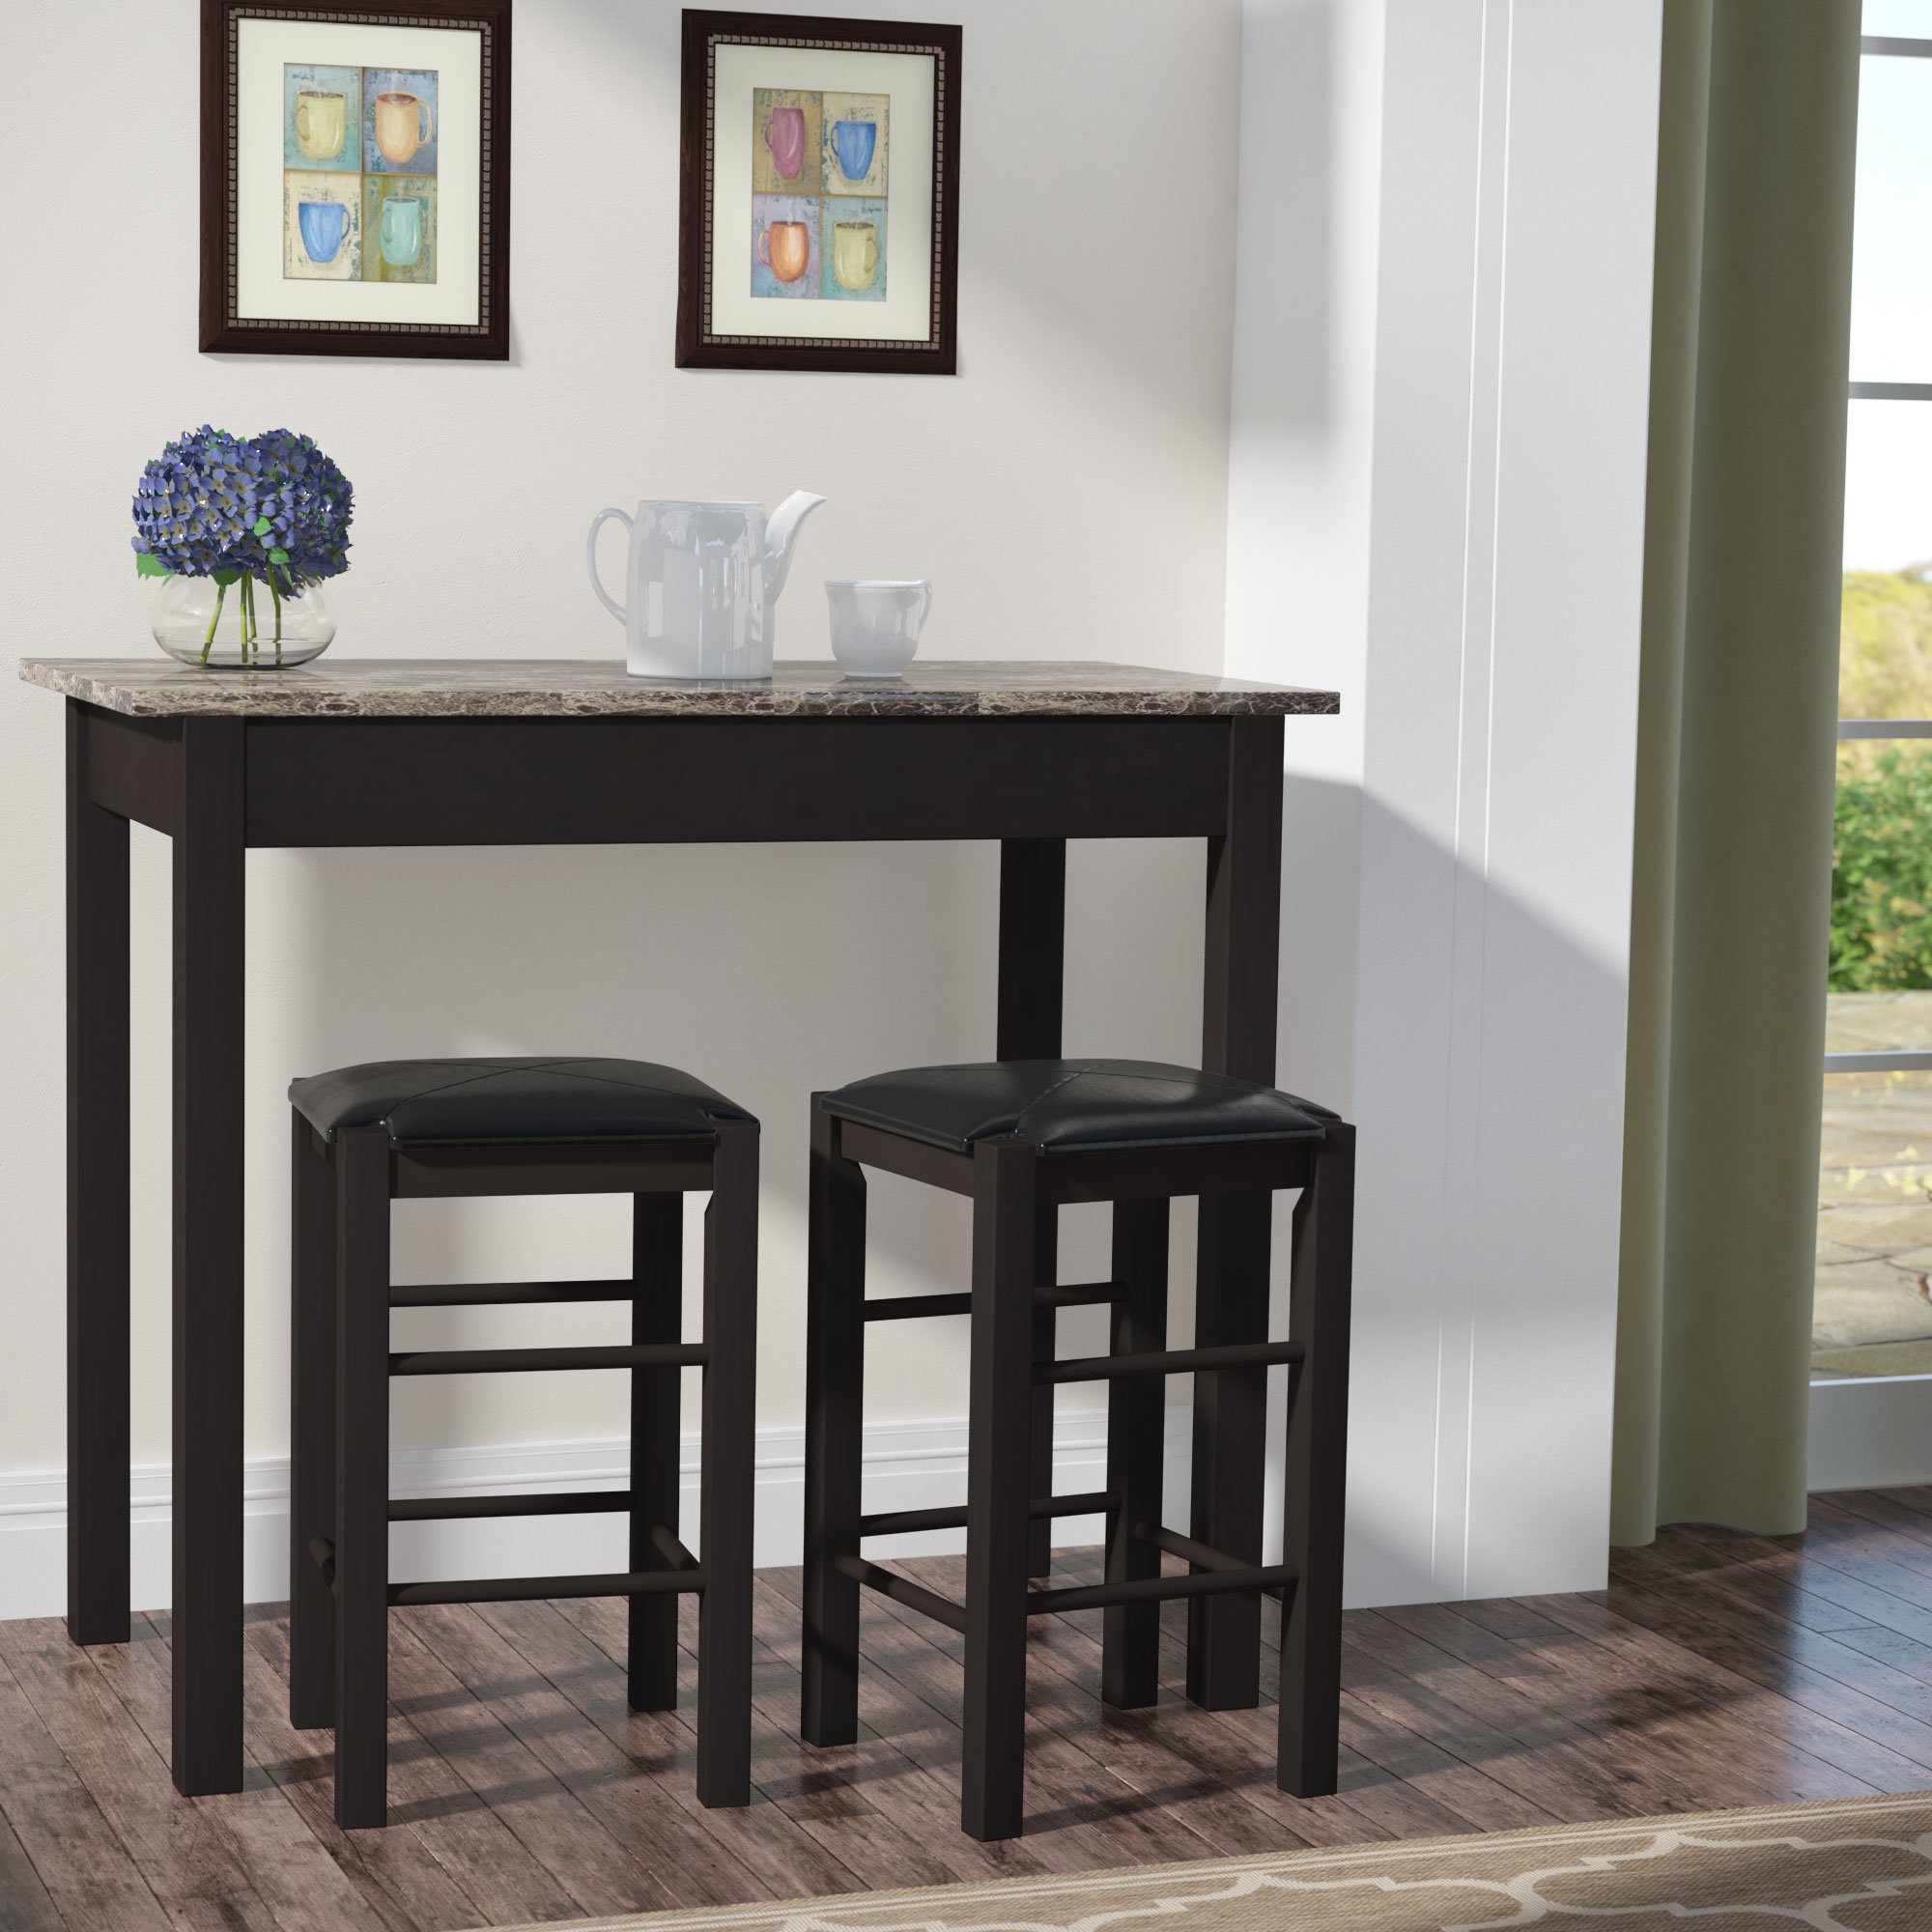 Berrios 3 Piece Counter Height Dining Sets Inside Fashionable Winston Porter Sheetz 3 Piece Counter Height Dining Set & Reviews (View 2 of 20)